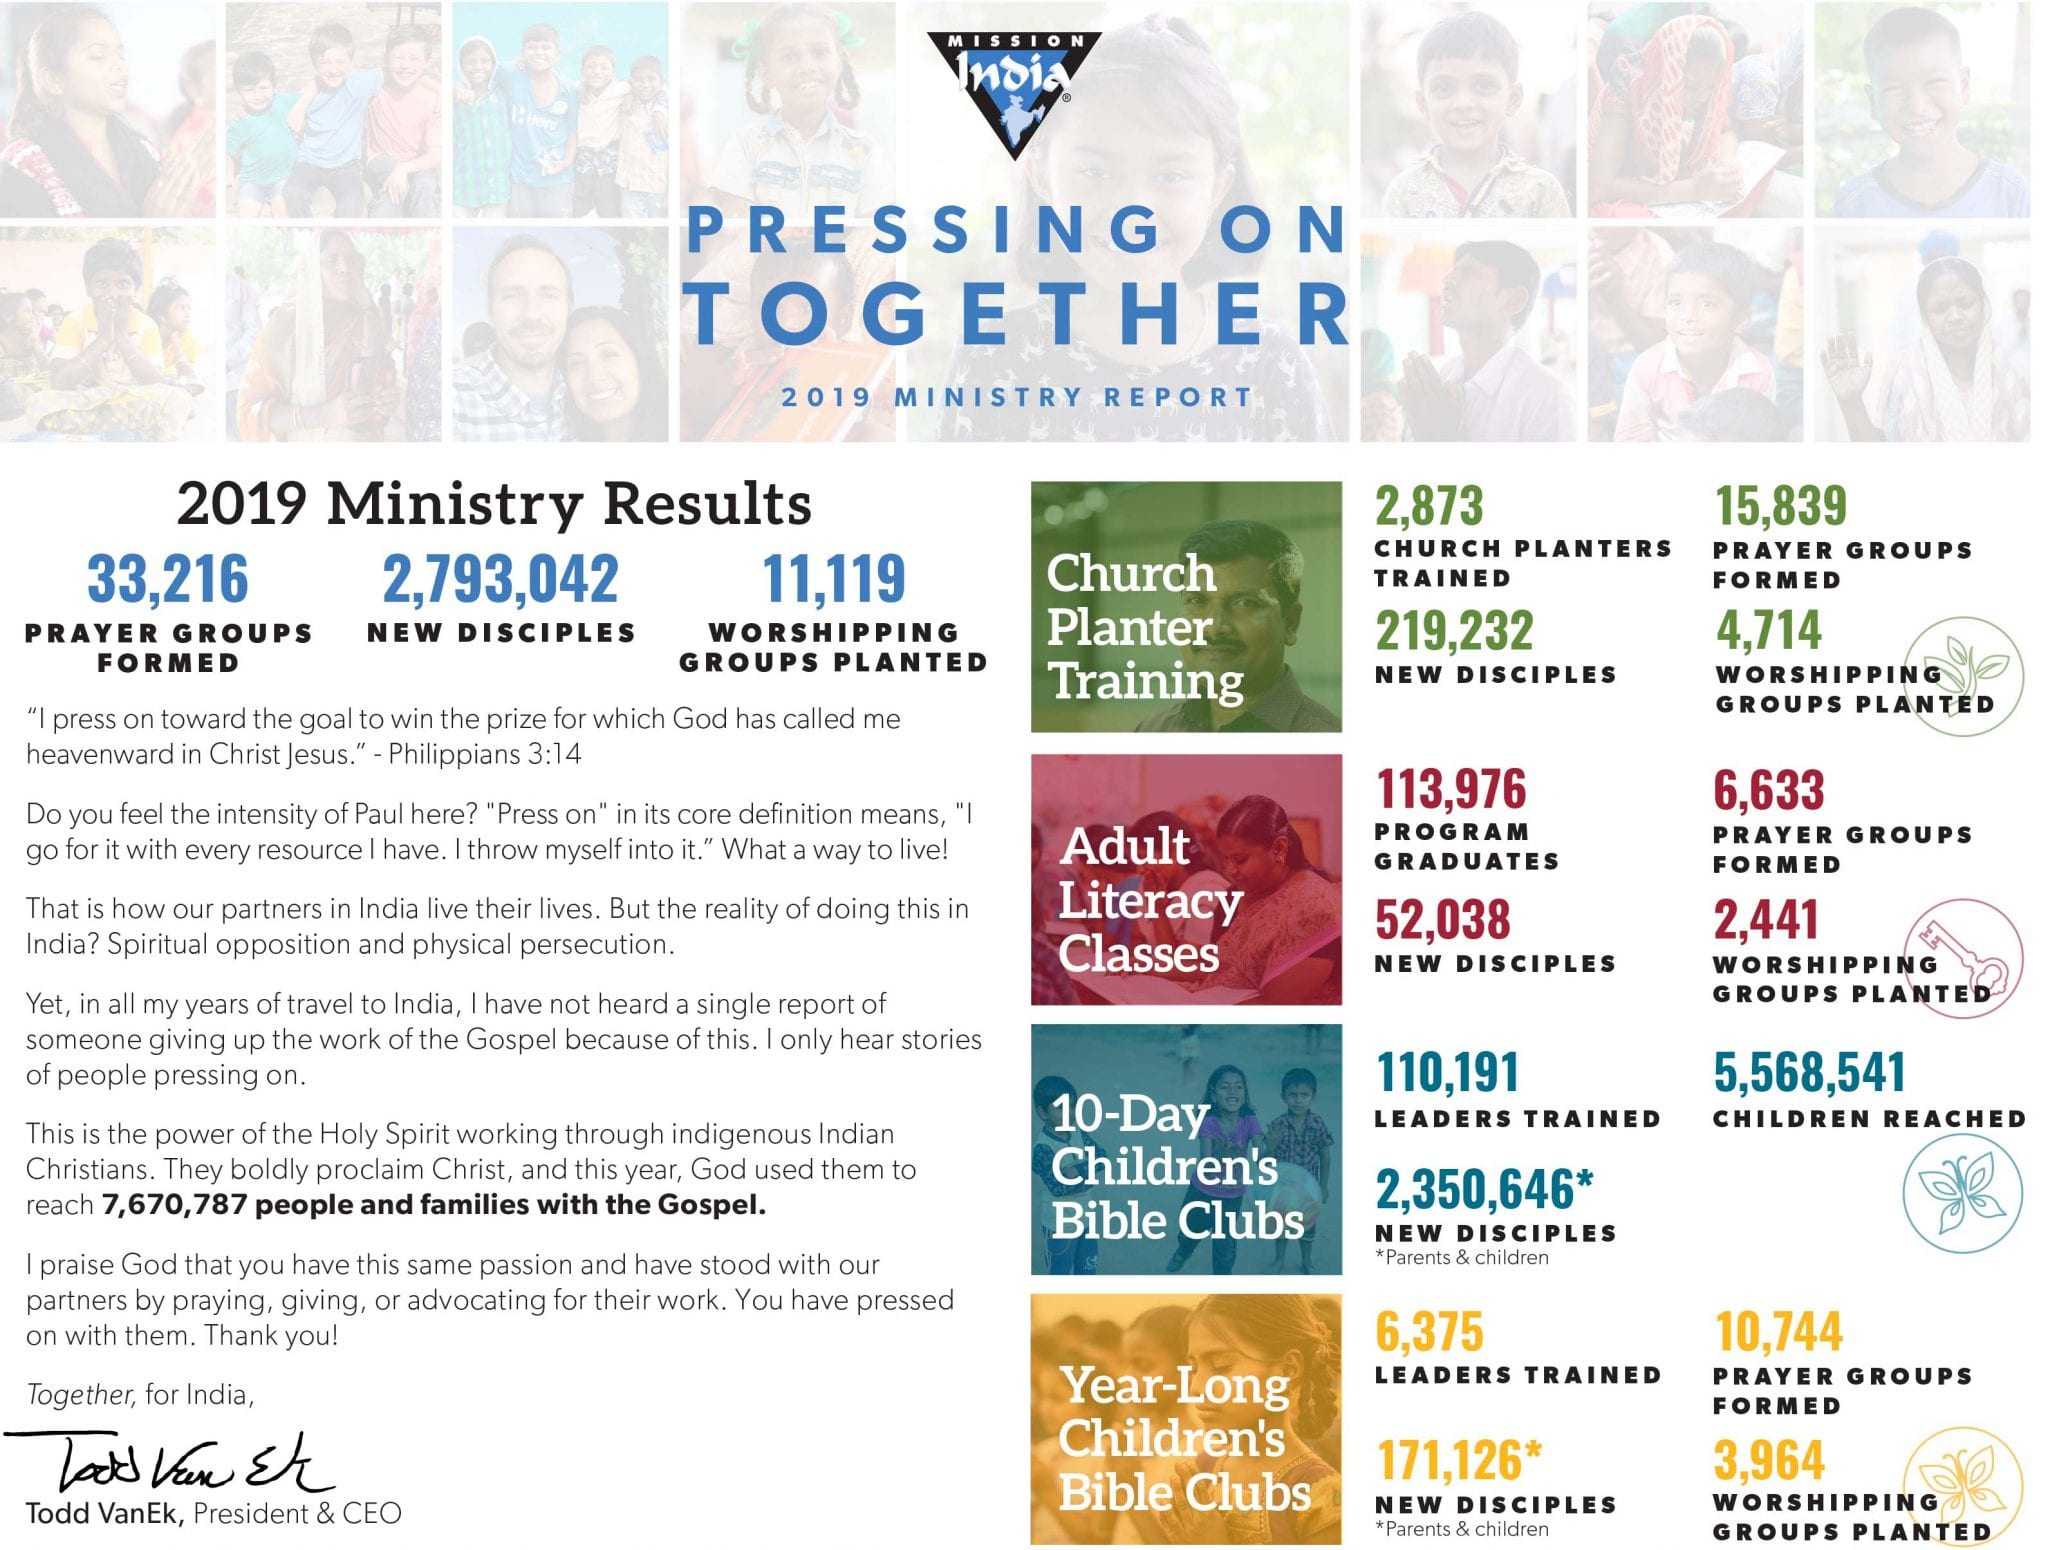 2019 Ministry Report